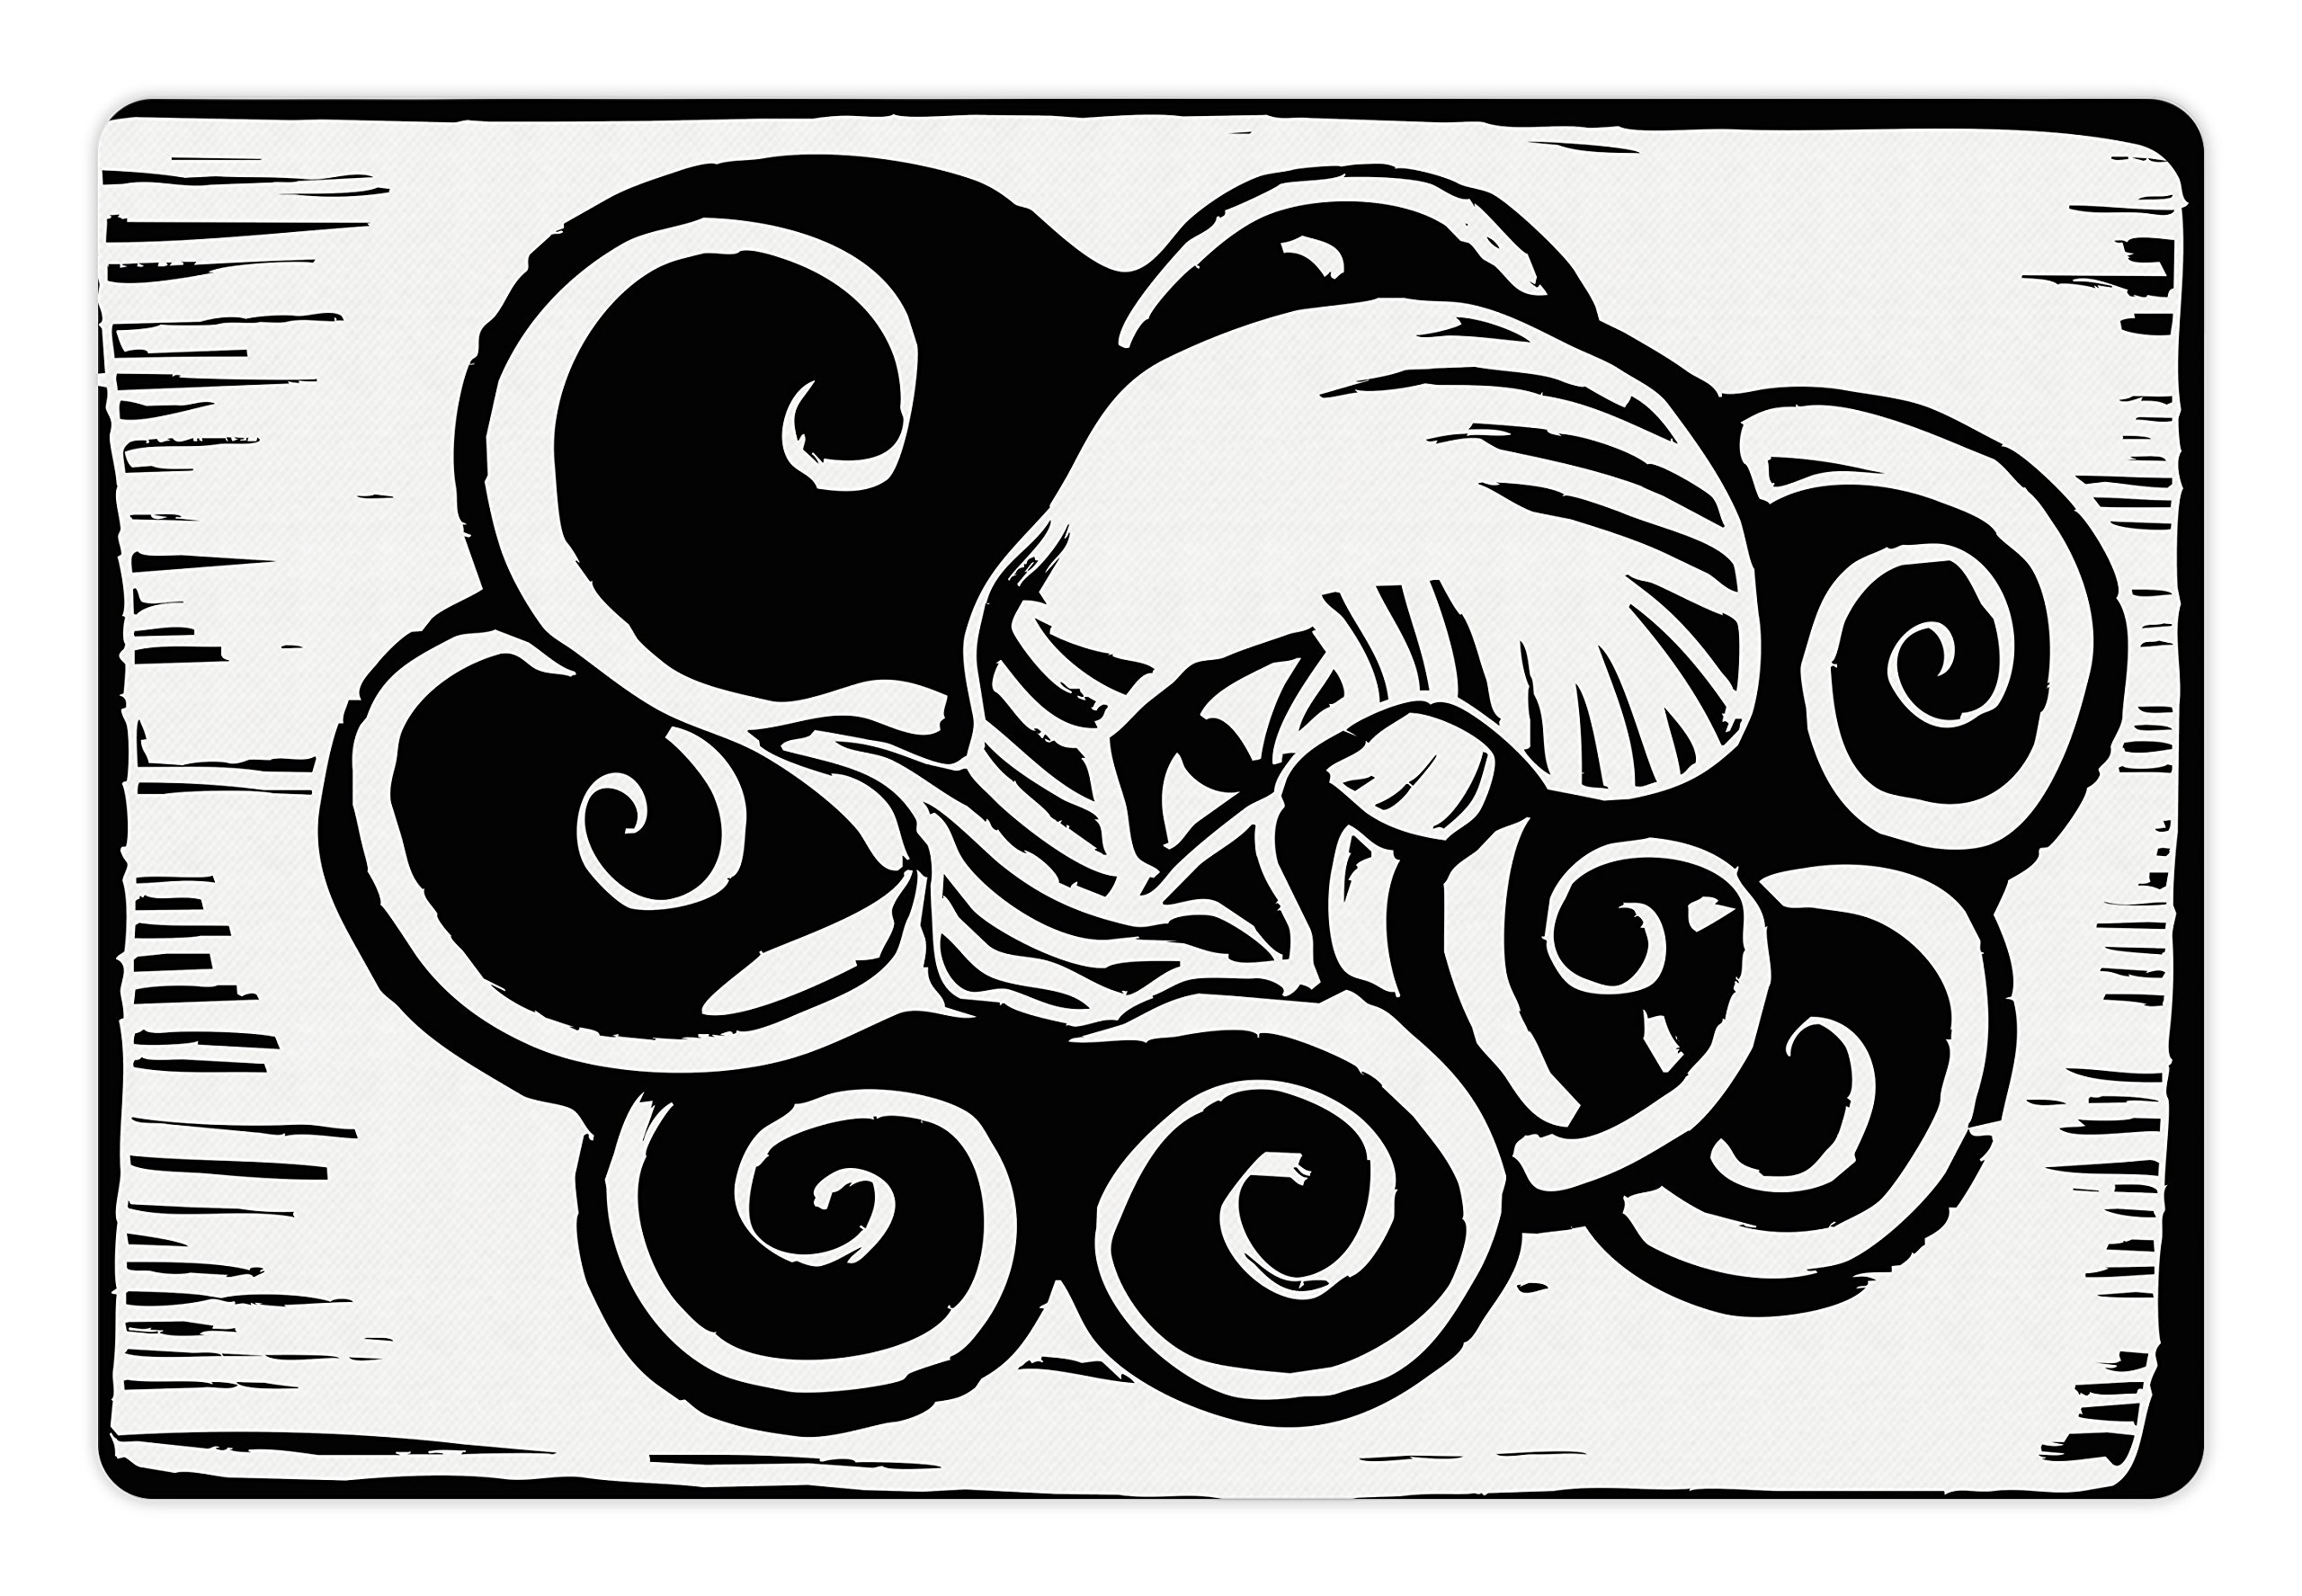 Lunarable Octopus Pet Mat for Food and Water, Ocean Wildlife Themed Animal with Tentacles Sitting in a Pool of Ink Sketch, Rectangle Non-Slip Rubber Mat for Dogs and Cats, Black and White by Lunarable (Image #1)